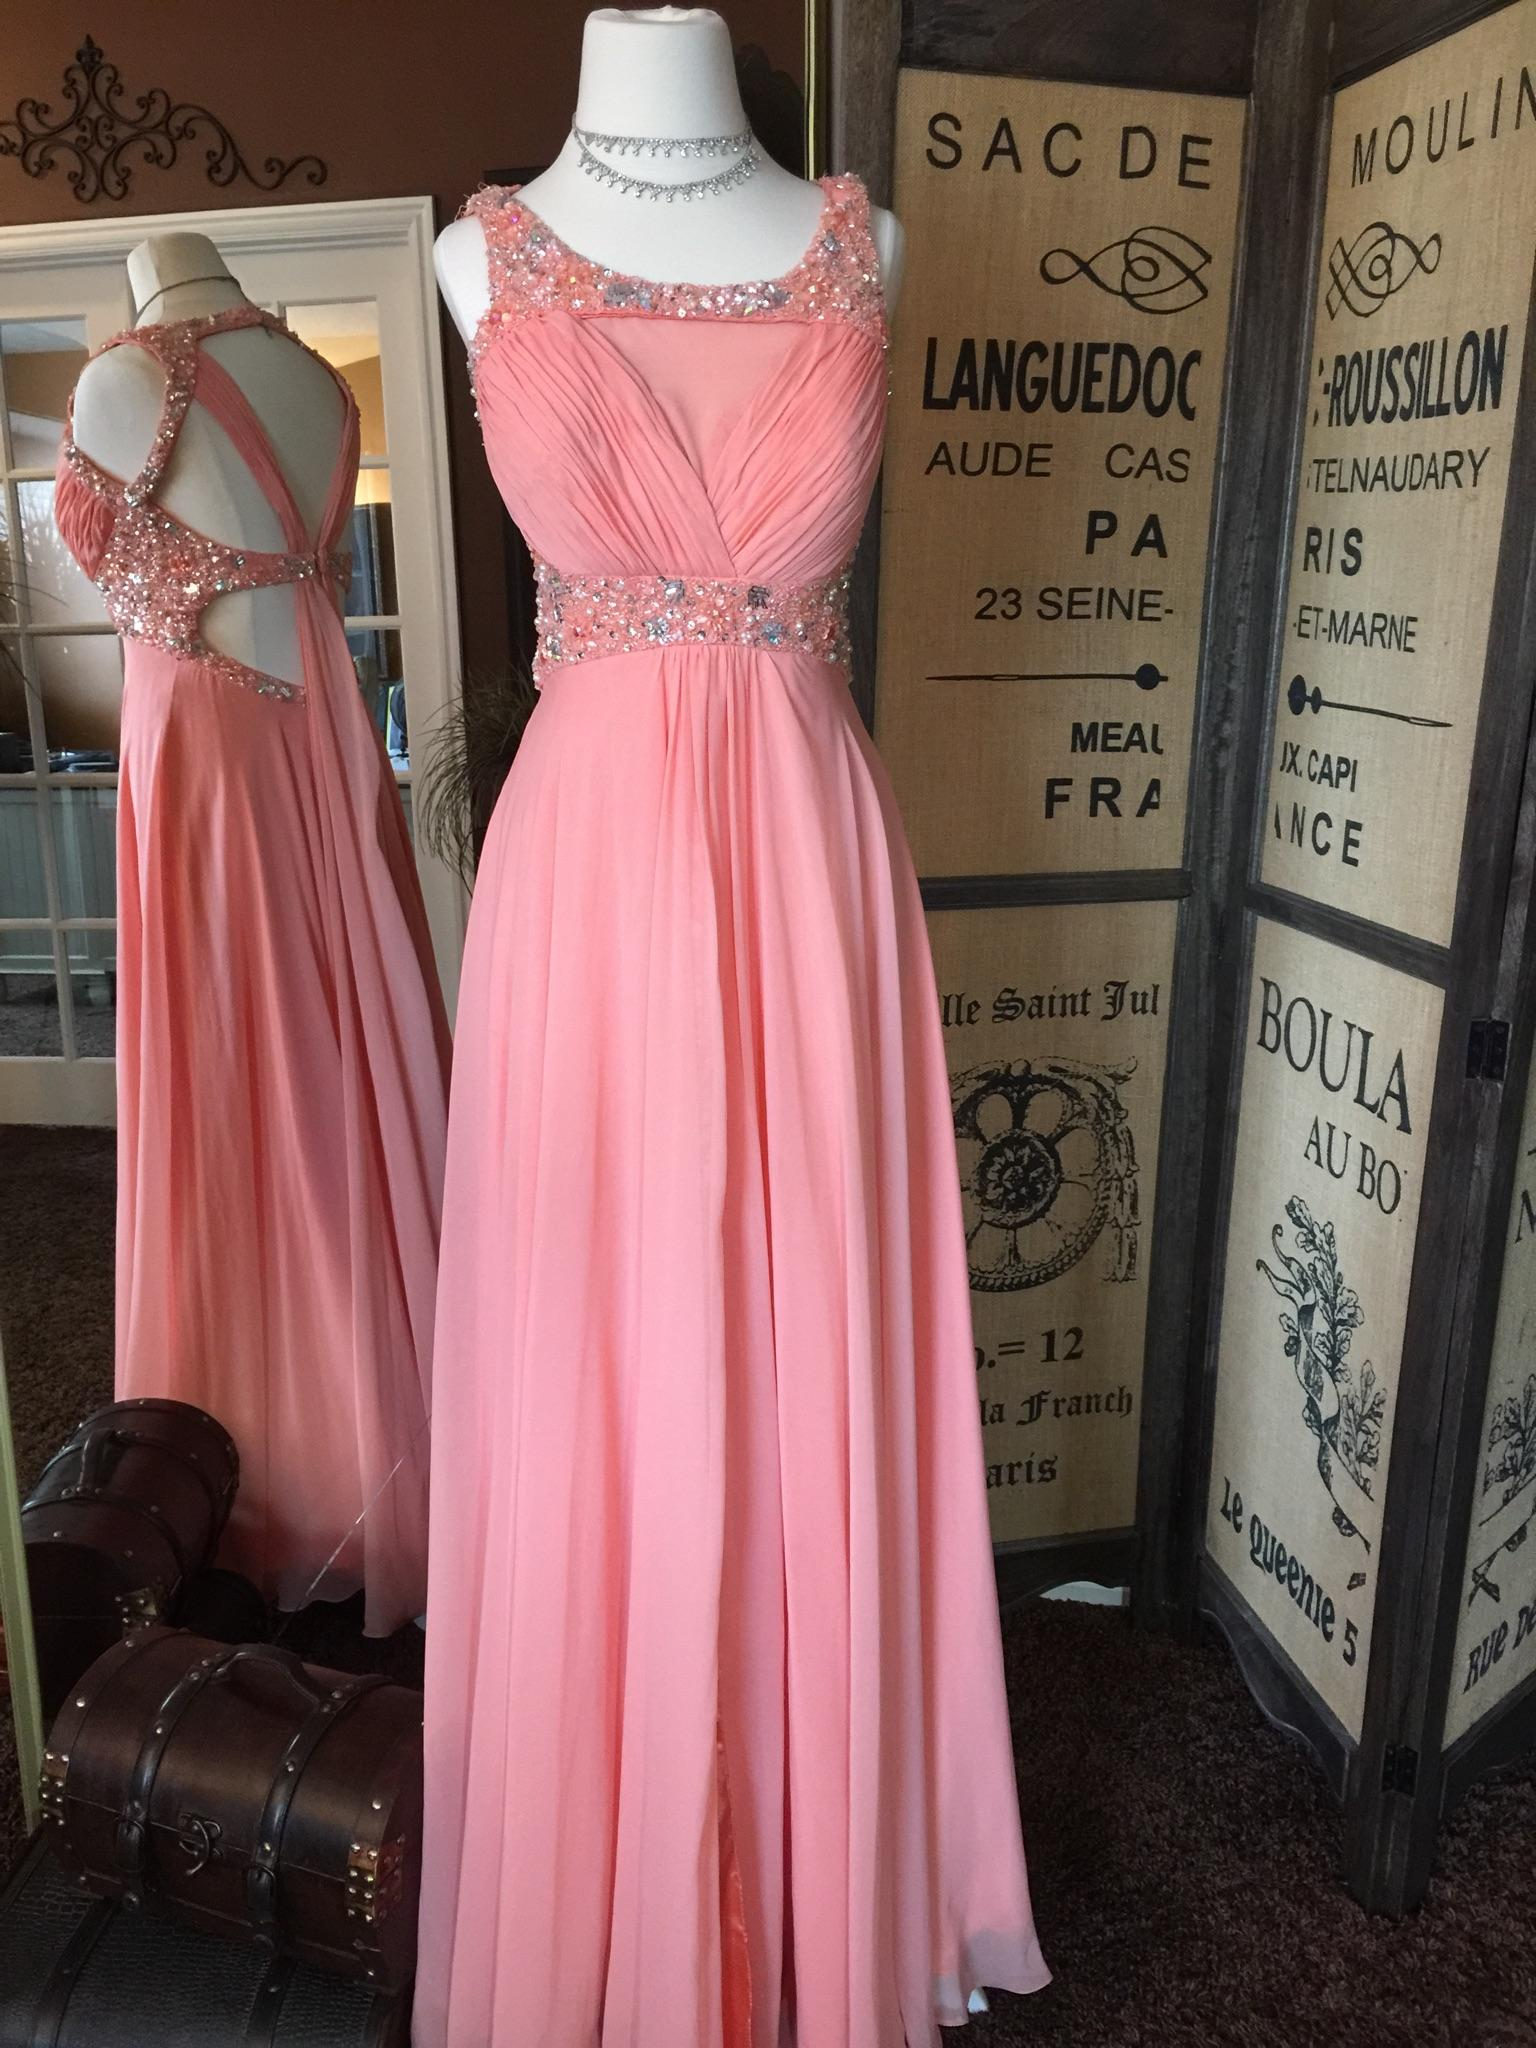 The dress garden utah - Pageant Special Occasion Dresses